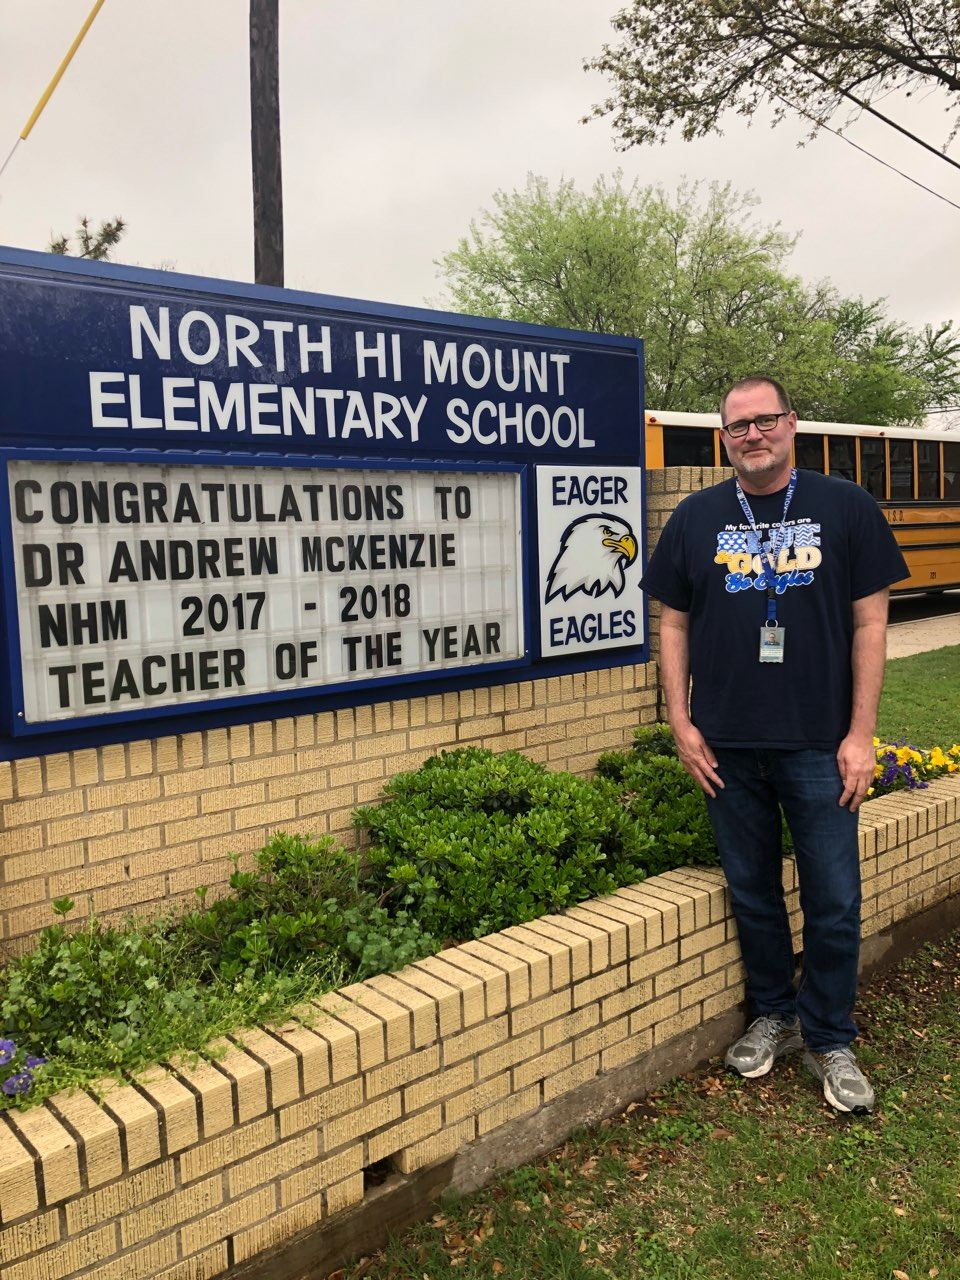 NHM's Teacher of the Year was named District Finalist for Elementary Teacher of the Year!